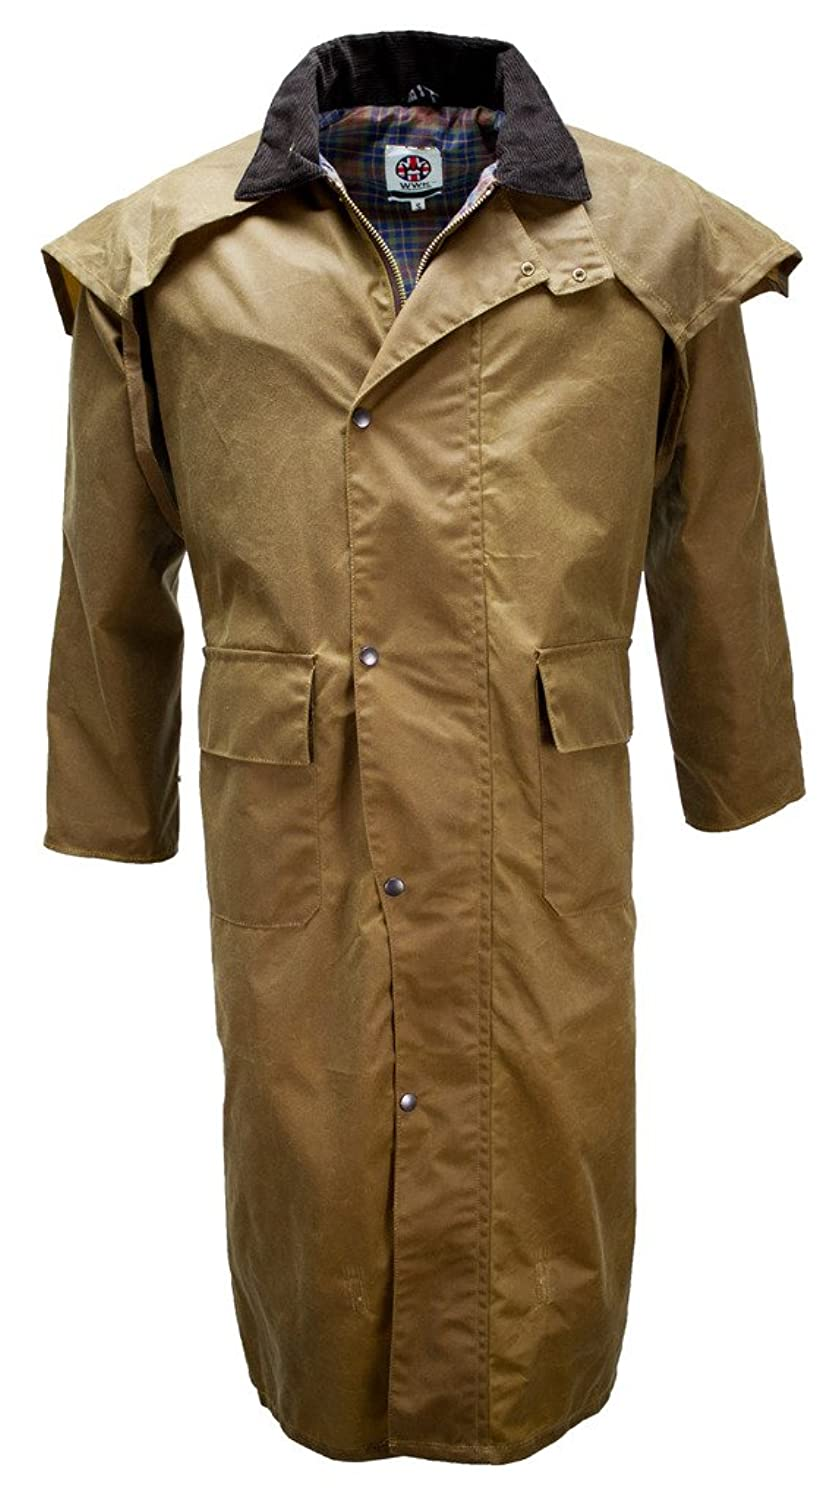 Western Trench Coats Tradingbasis